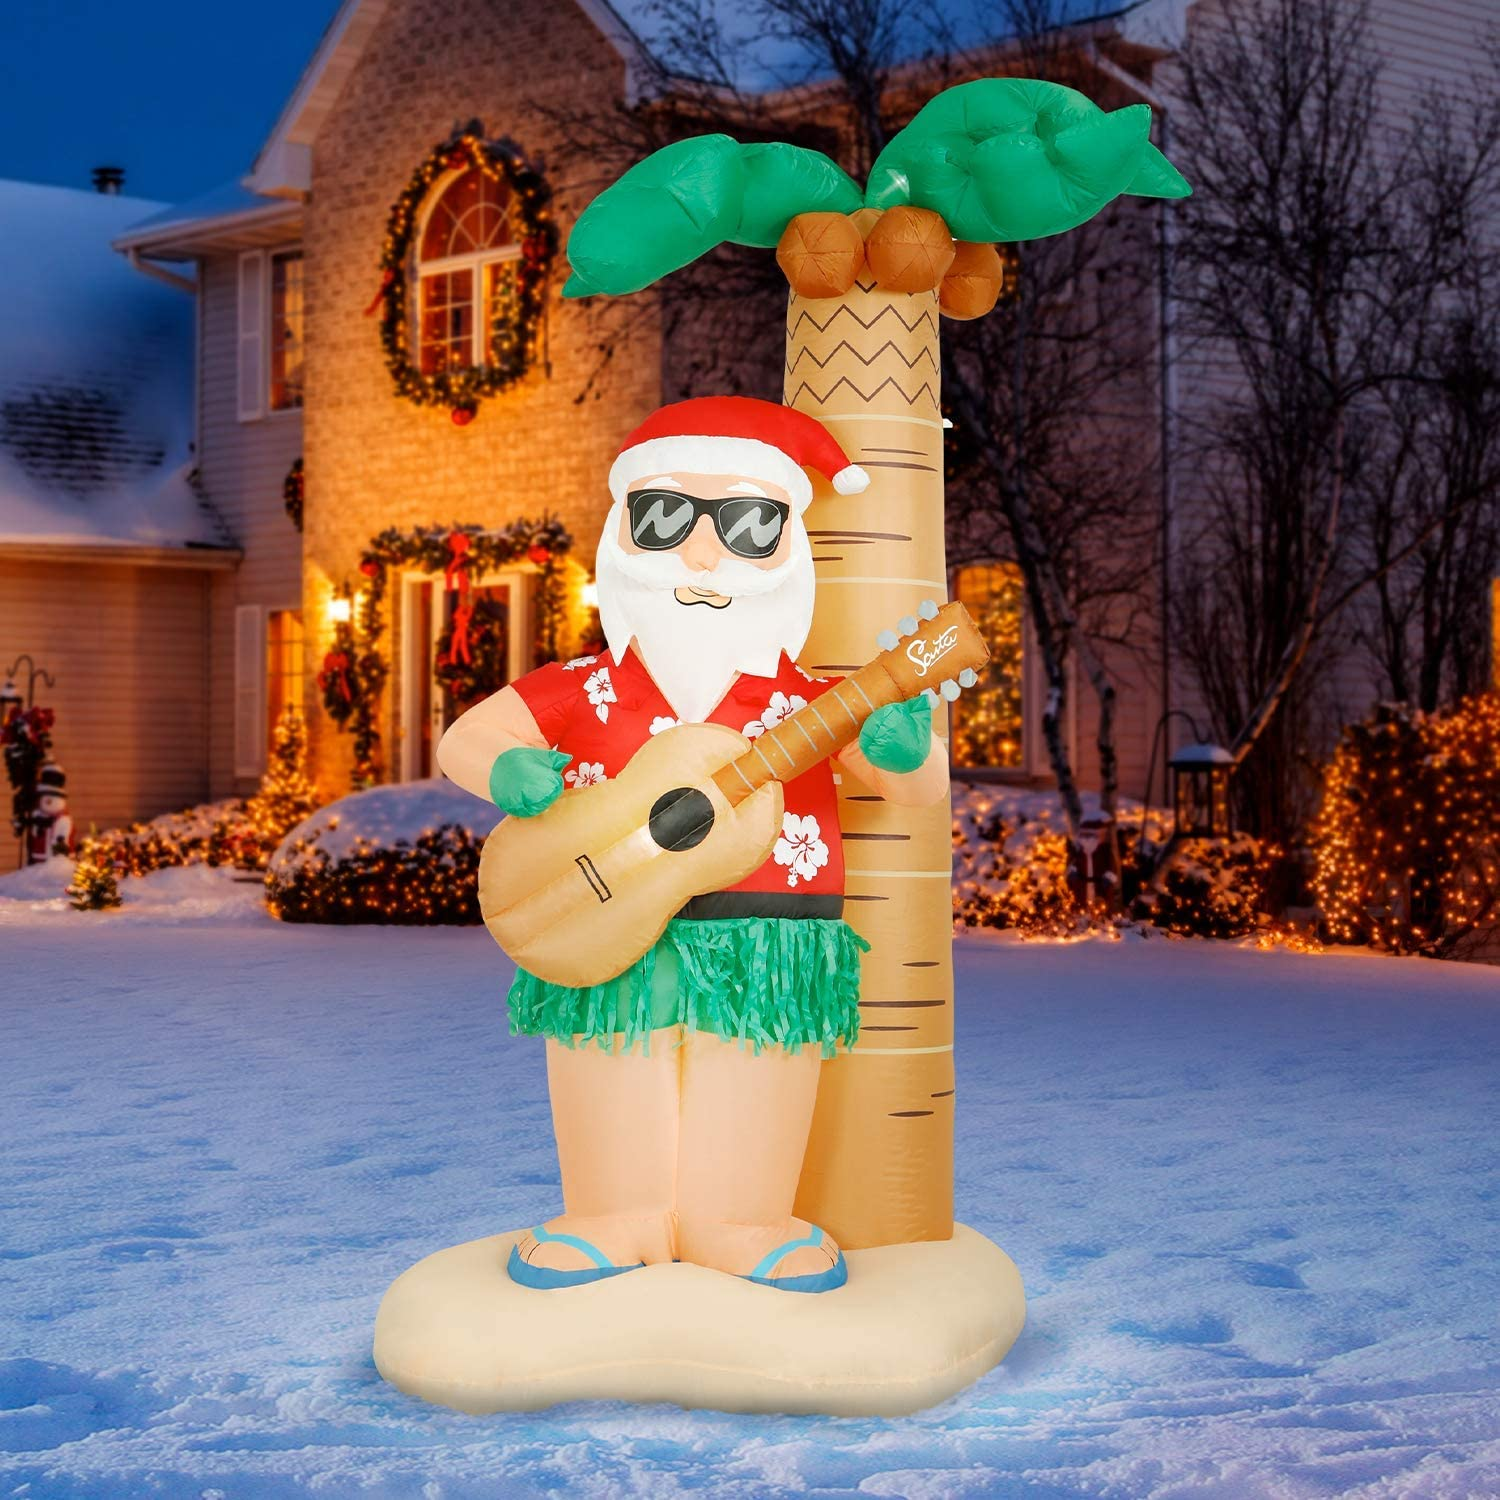 Holidayana Hula Santa Christmas Inflatable - 8 ft Tall Hula Santa on Beach Christmas Inflatable Outdoor Yard Decoration with LED Lights, Fan, and Stakes